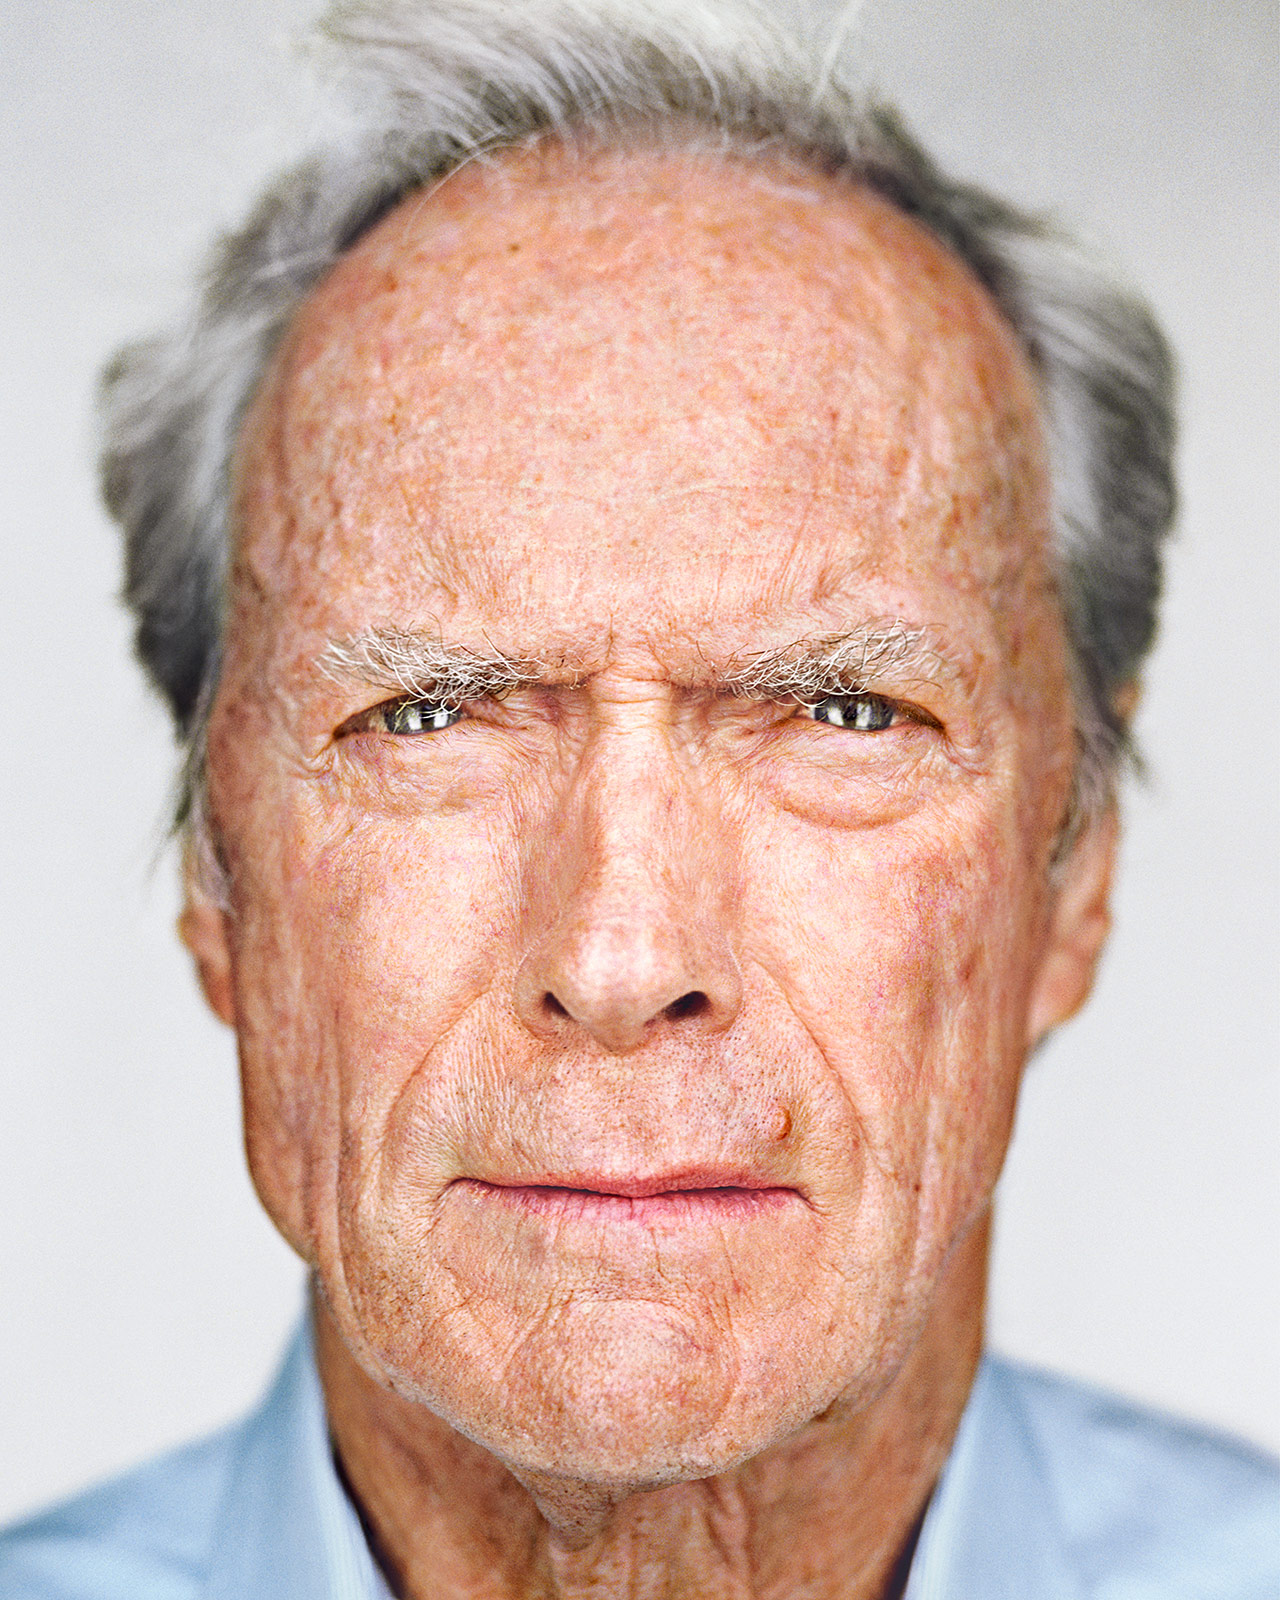 10A_Clint_Eastwood_167351-1_FR1_F_WEB